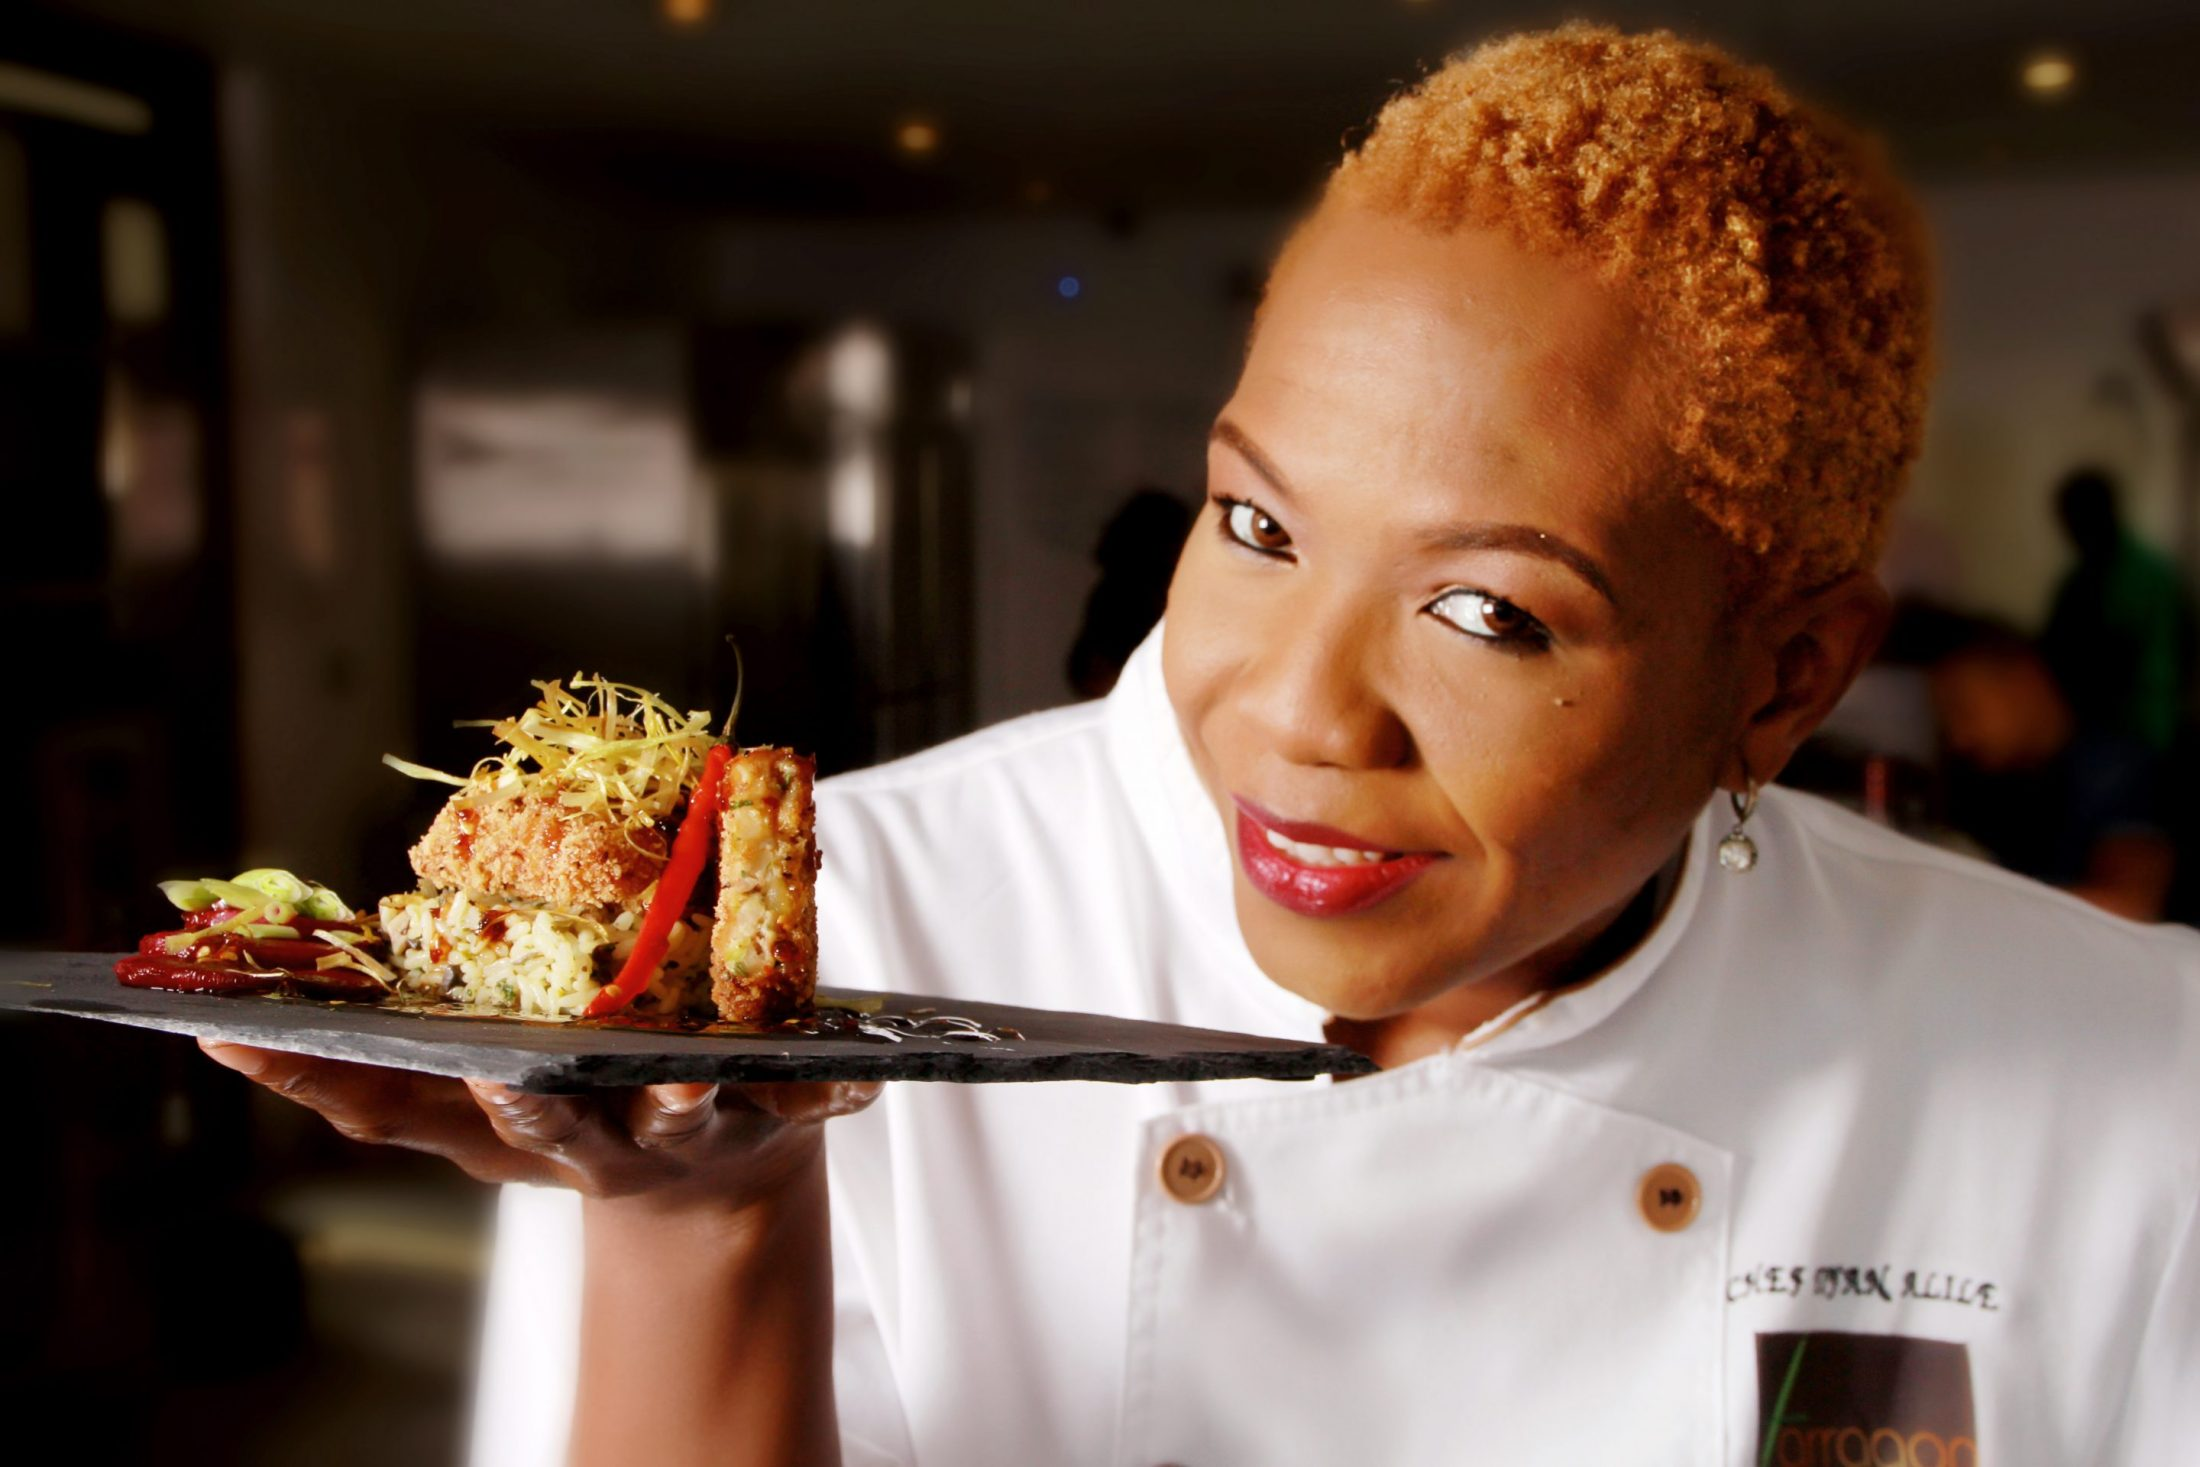 Cuisine Noir Magazine Chef Tiyan Alile's Quest to Bring Nigerian Cuisine to the World